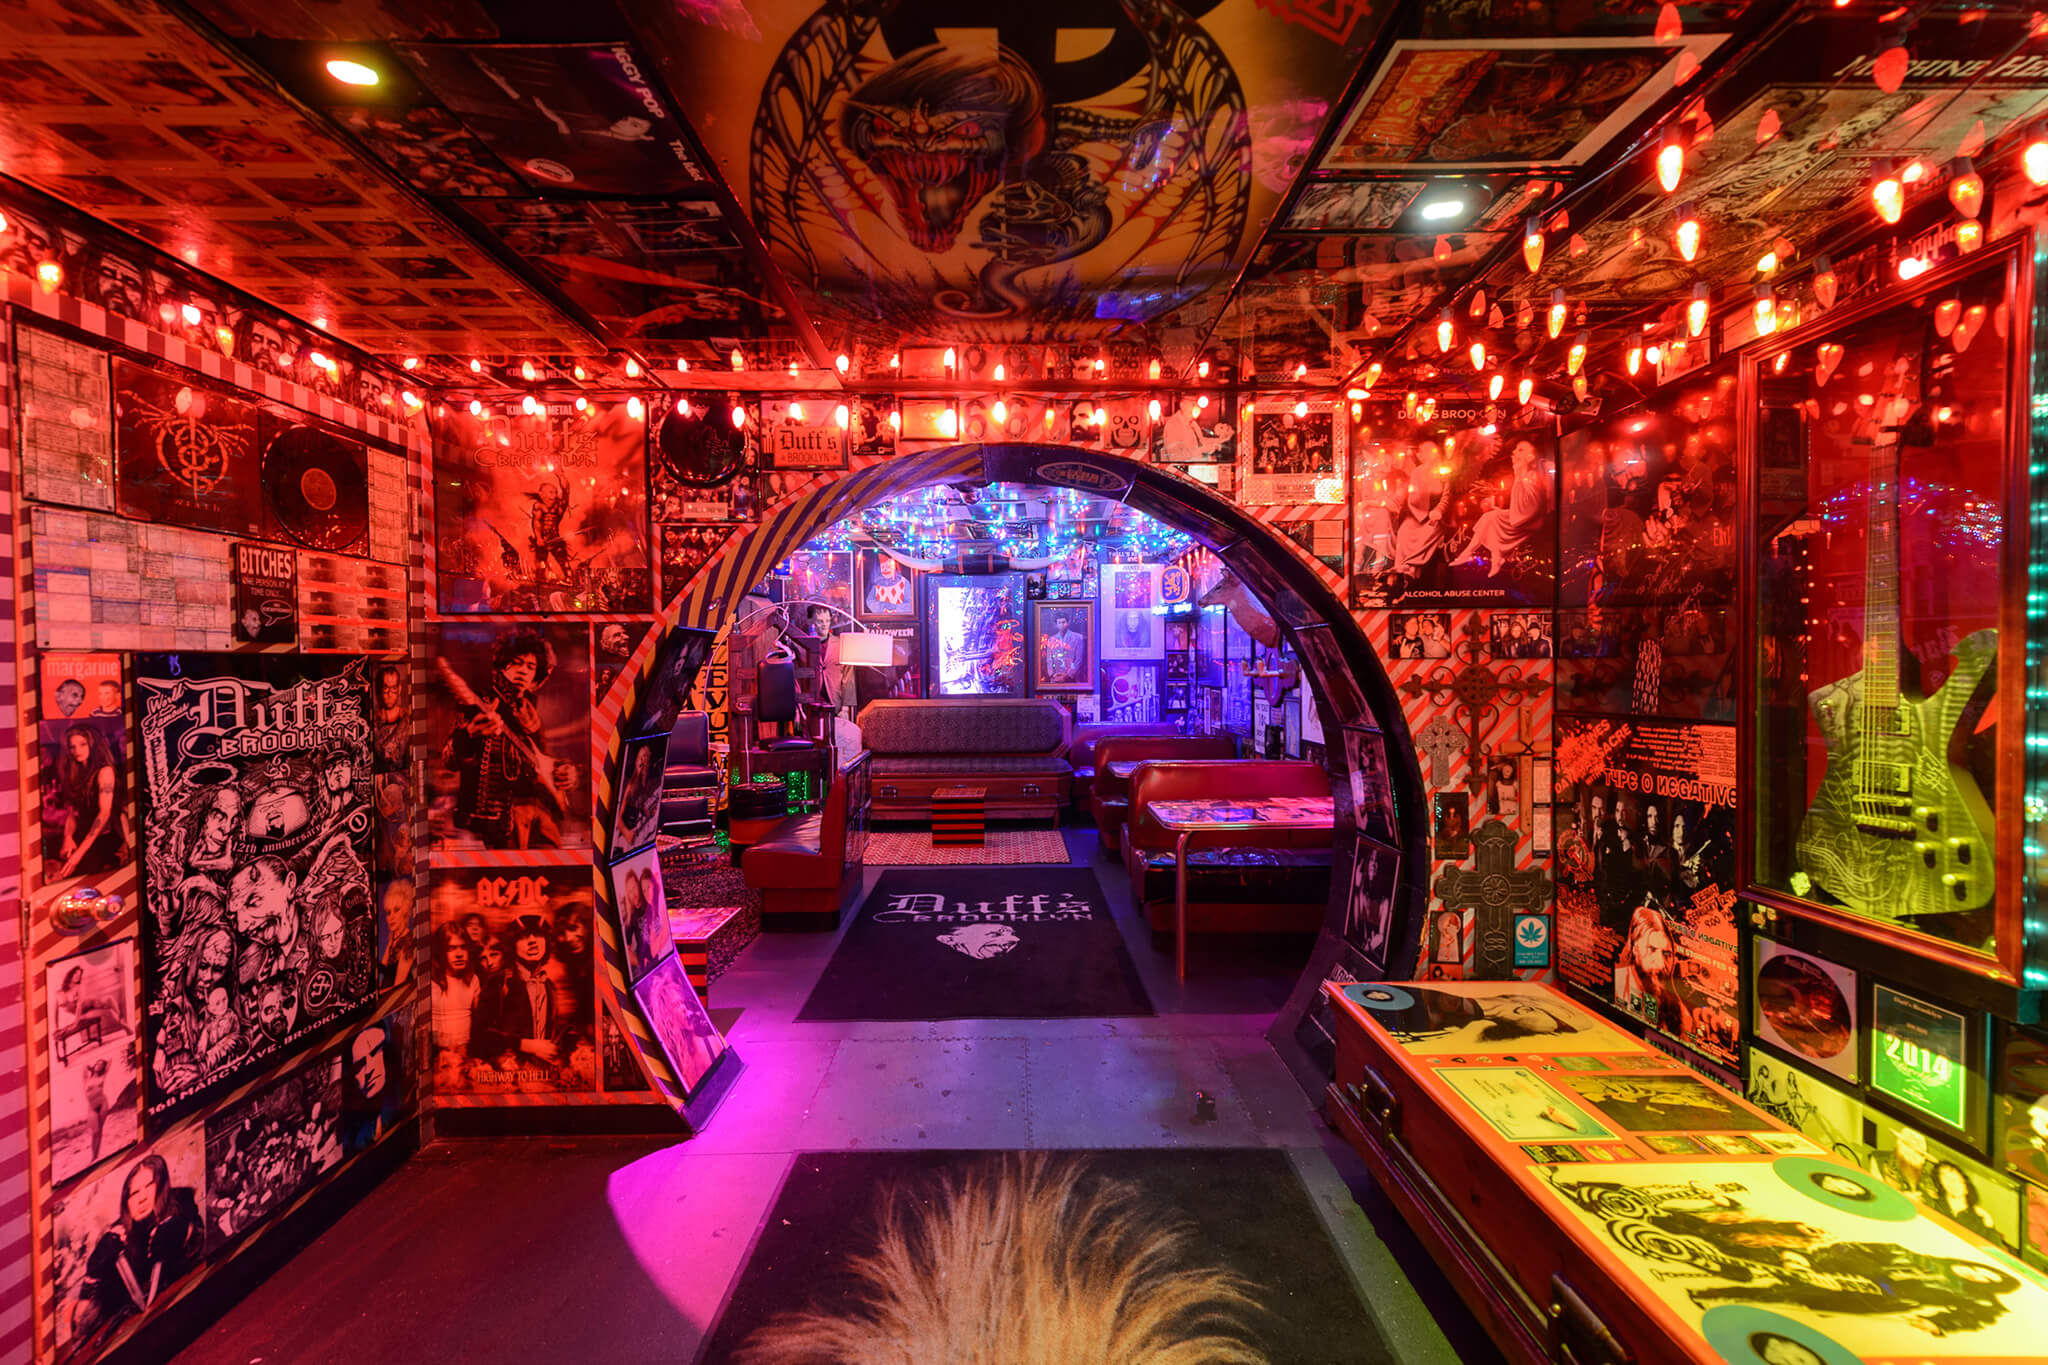 haunted bars for halloween in NYC